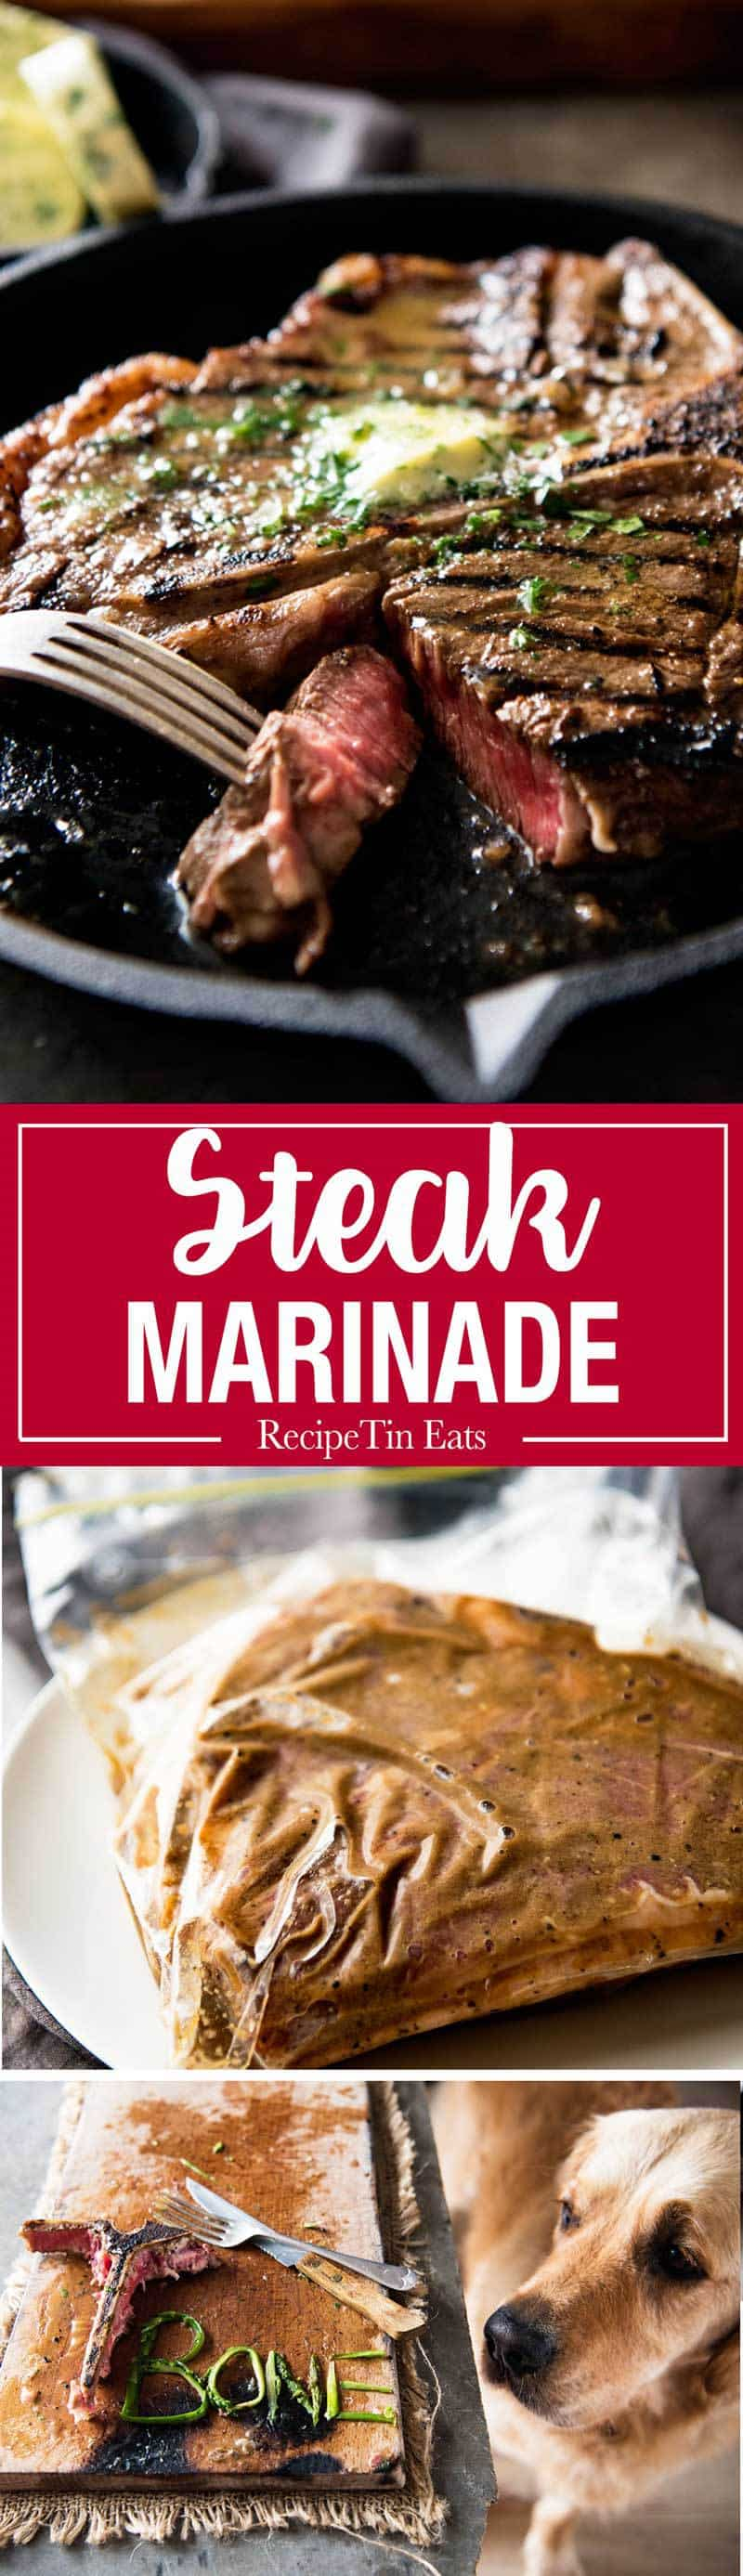 Steak Marinade - A simple, magical marinade that truly tenderises, while adding flavour AND making the steak juicy. Genius! recipetineats.com